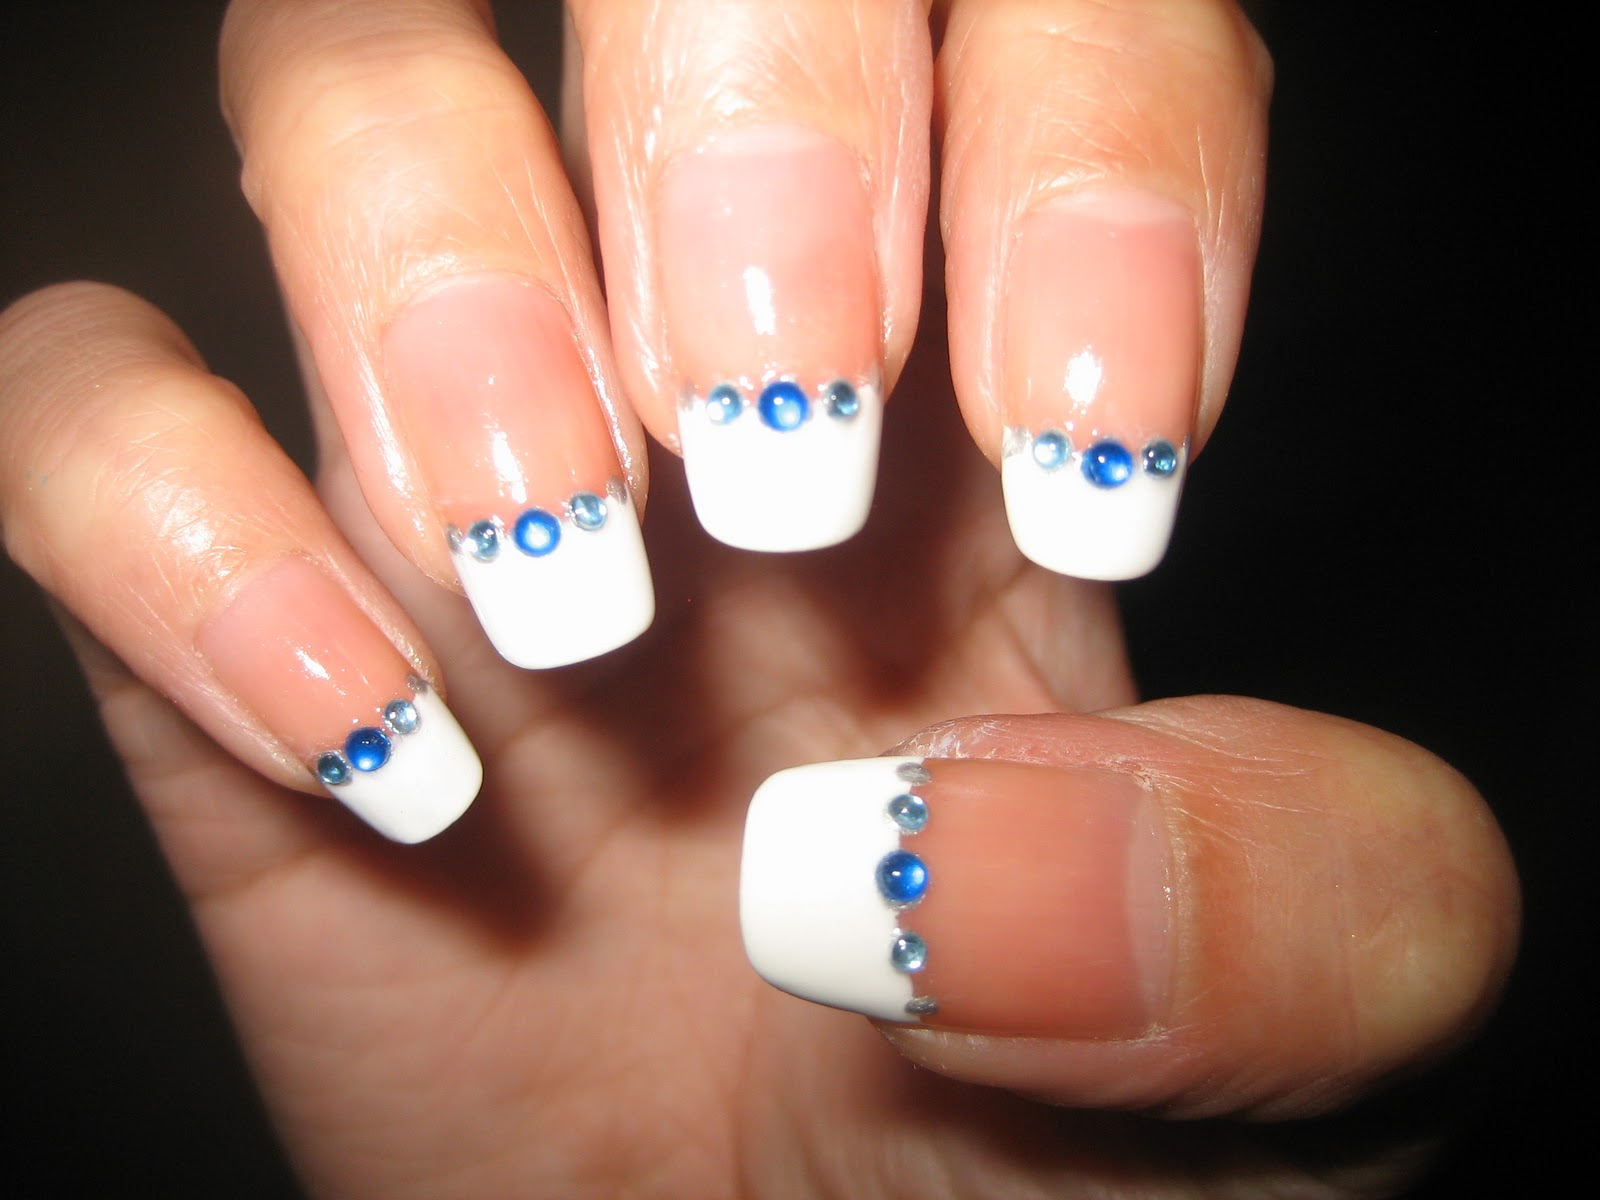 Awesome Nails By Nicole: NOTD: Rhinestone French Manicure :)